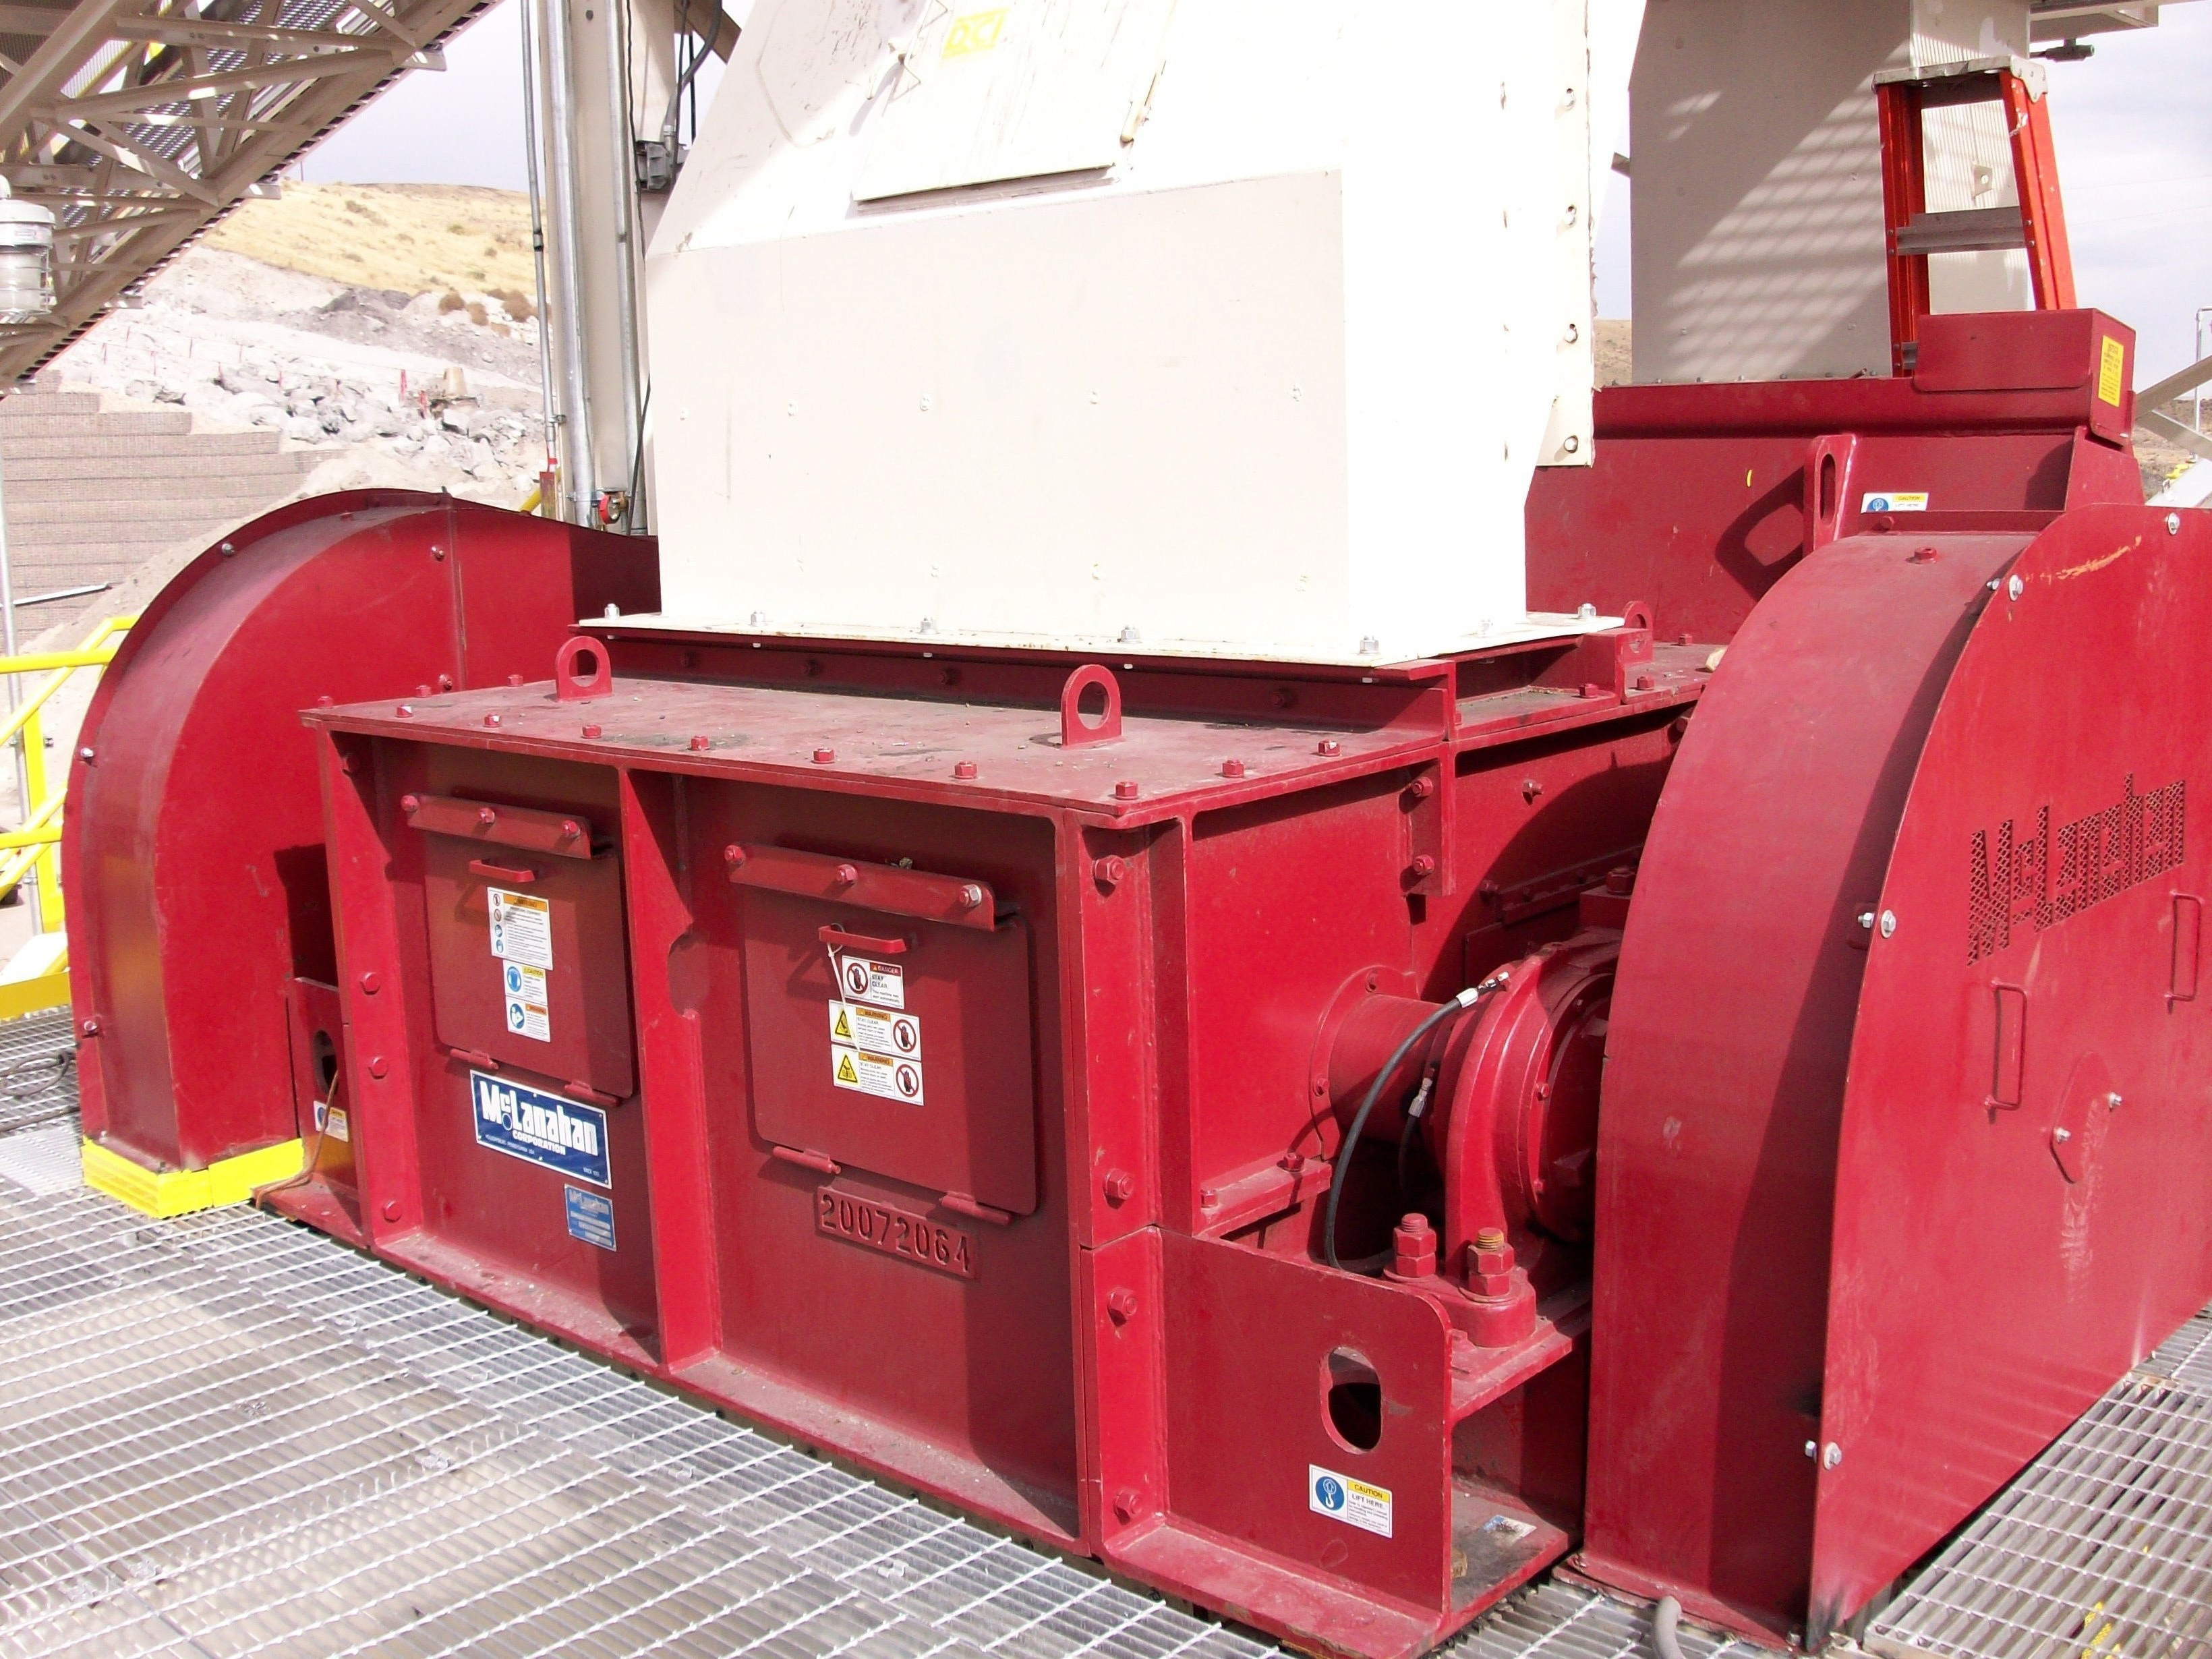 double-roll-crusher-6.JPG?mtime=20180612115214#asset:1884